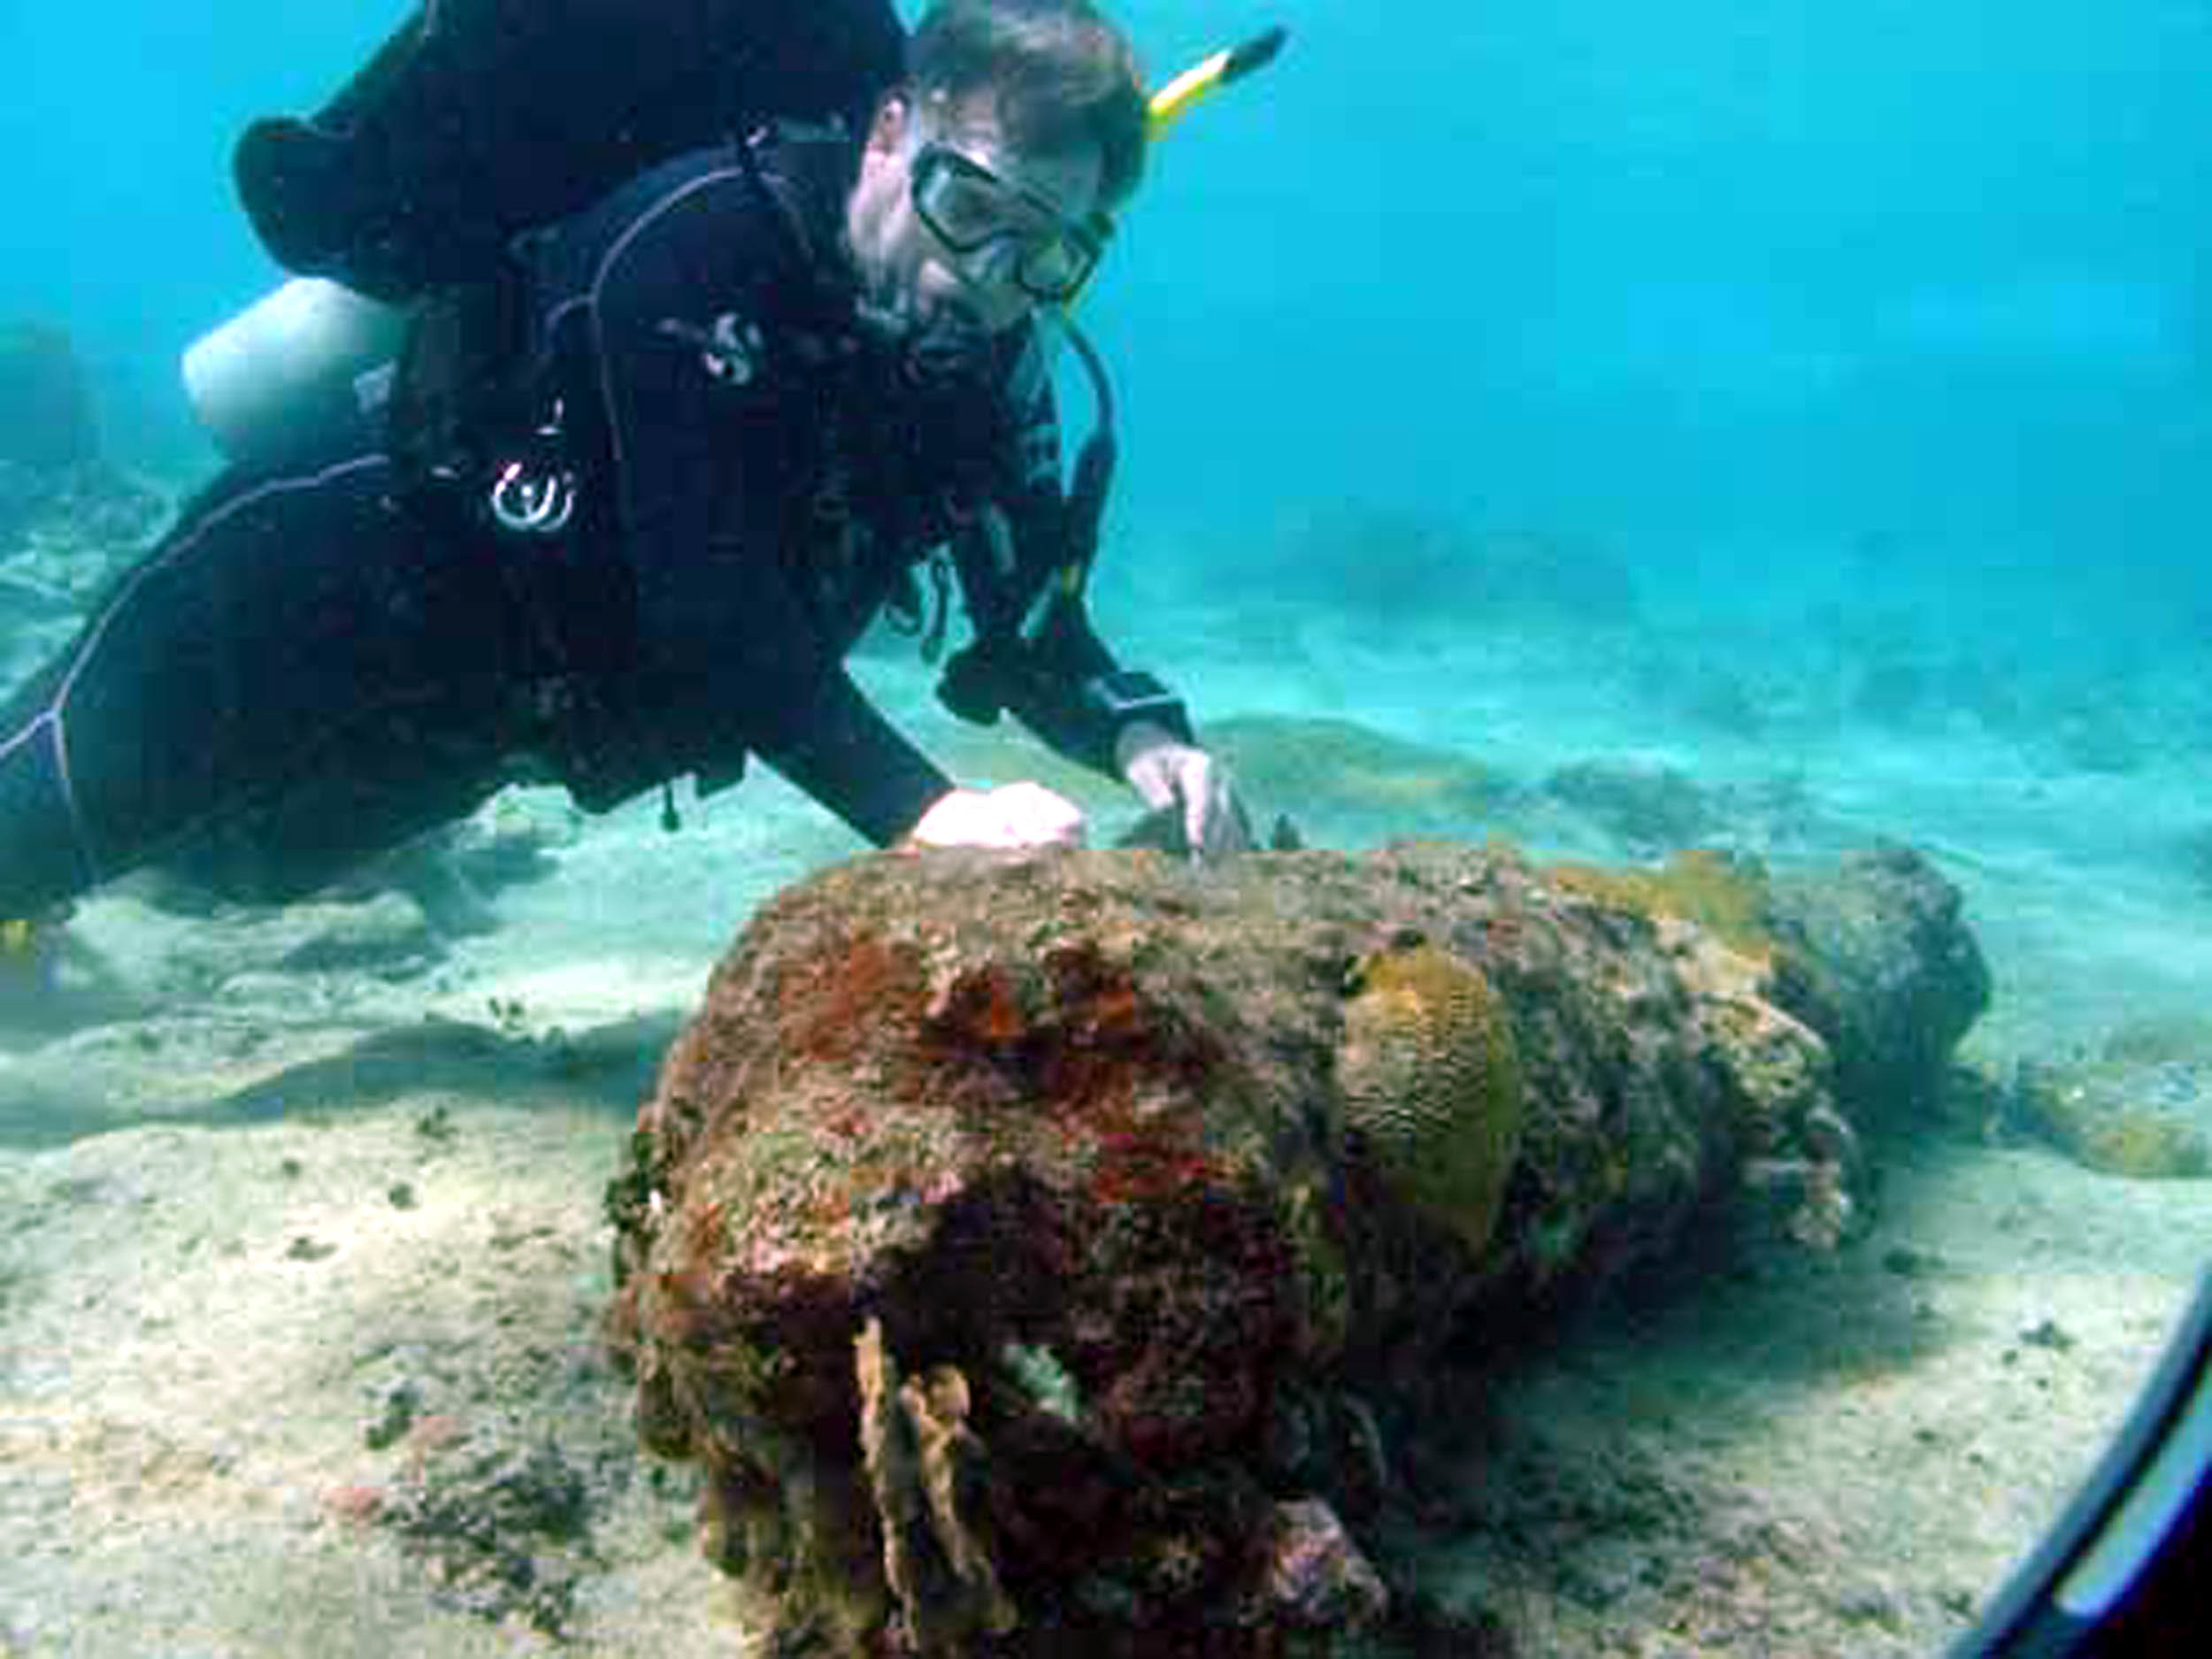 Cannons from one of Captain Kidd's ships were discovered off the coast of the Dominican Republic.